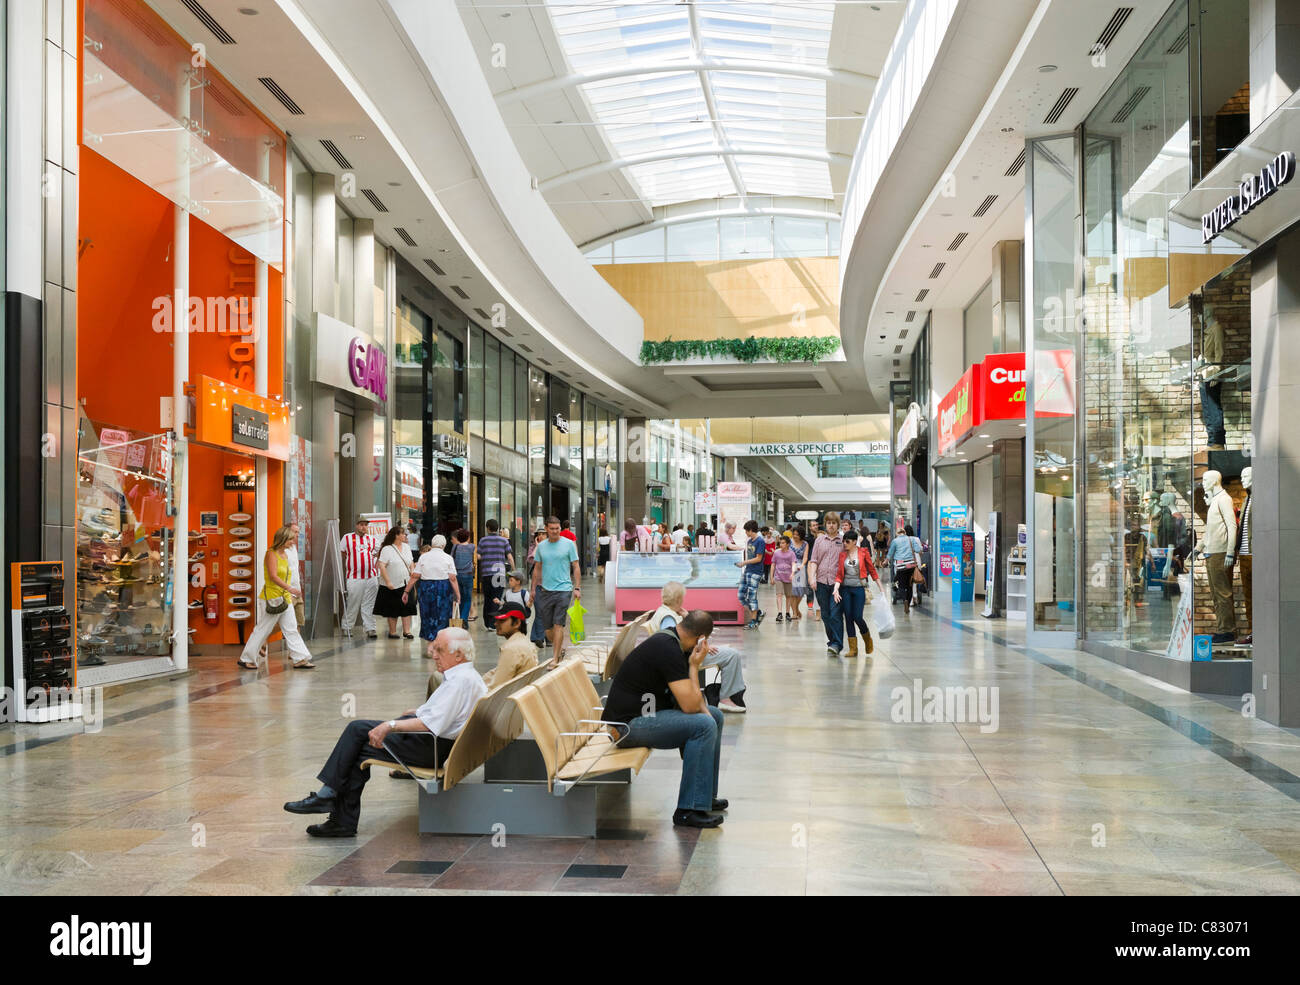 West Quay Shopping Centre in the city centre, Southampton, Hampshire, England, UK Stock Photo